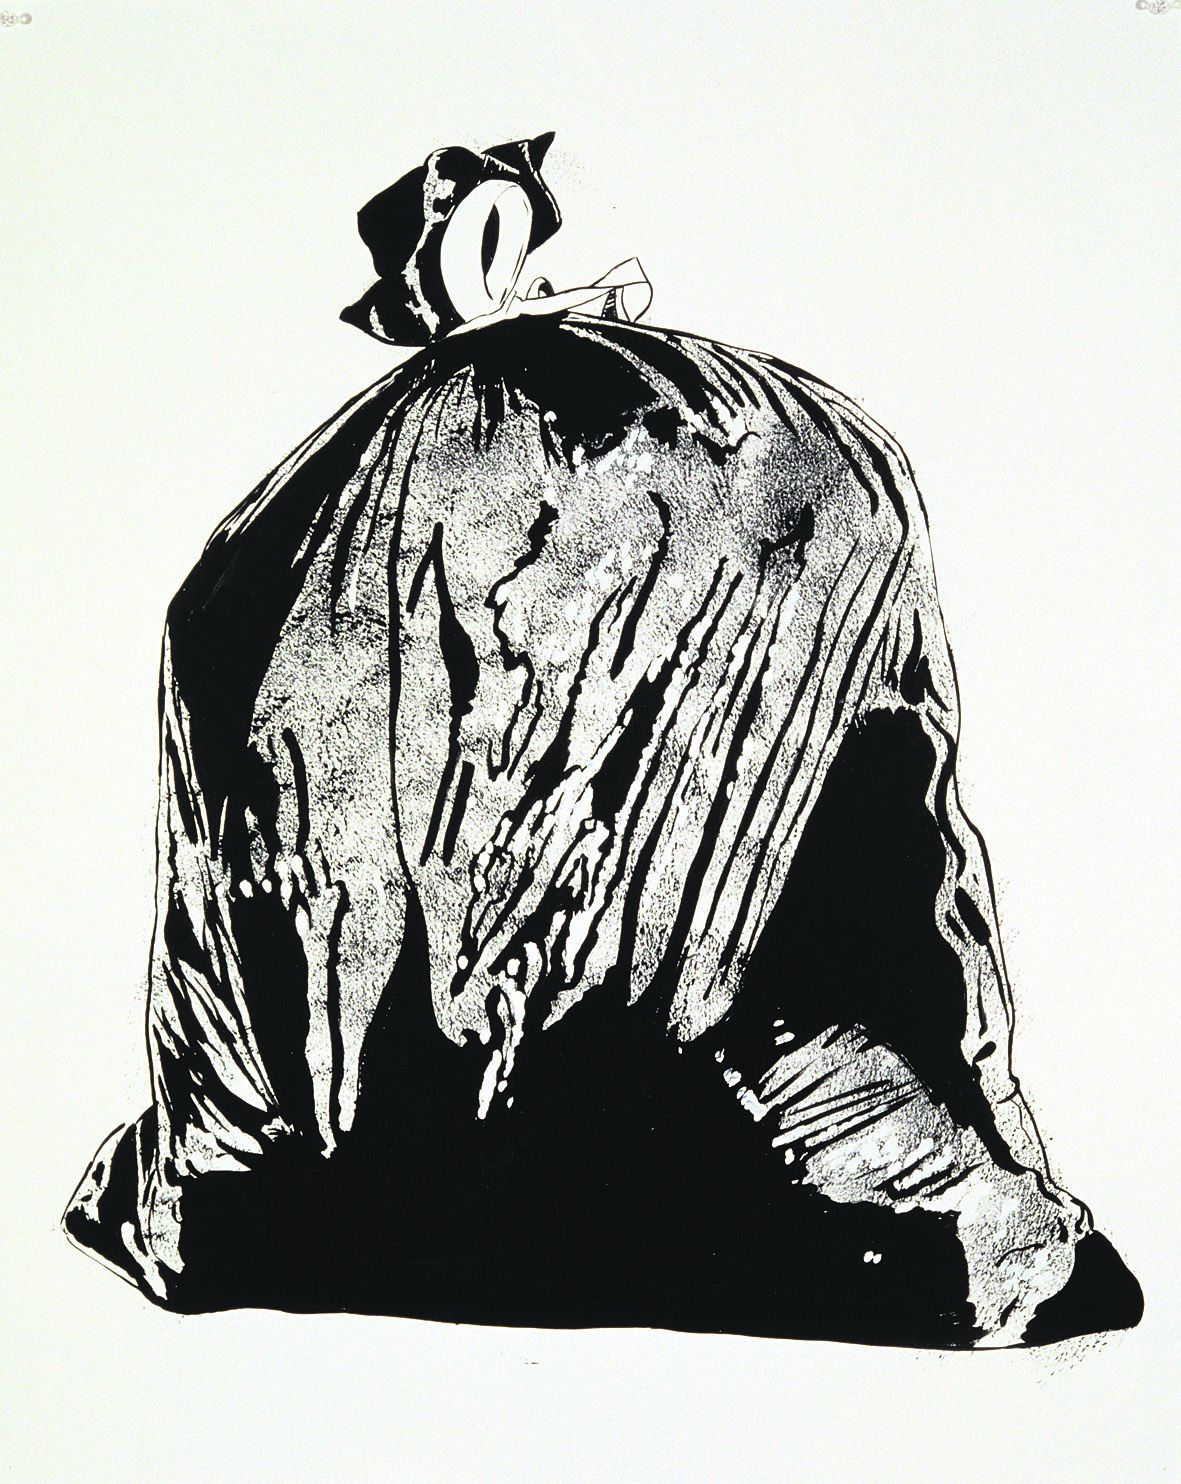 Garbage Bag V 1989 Mike Kelley